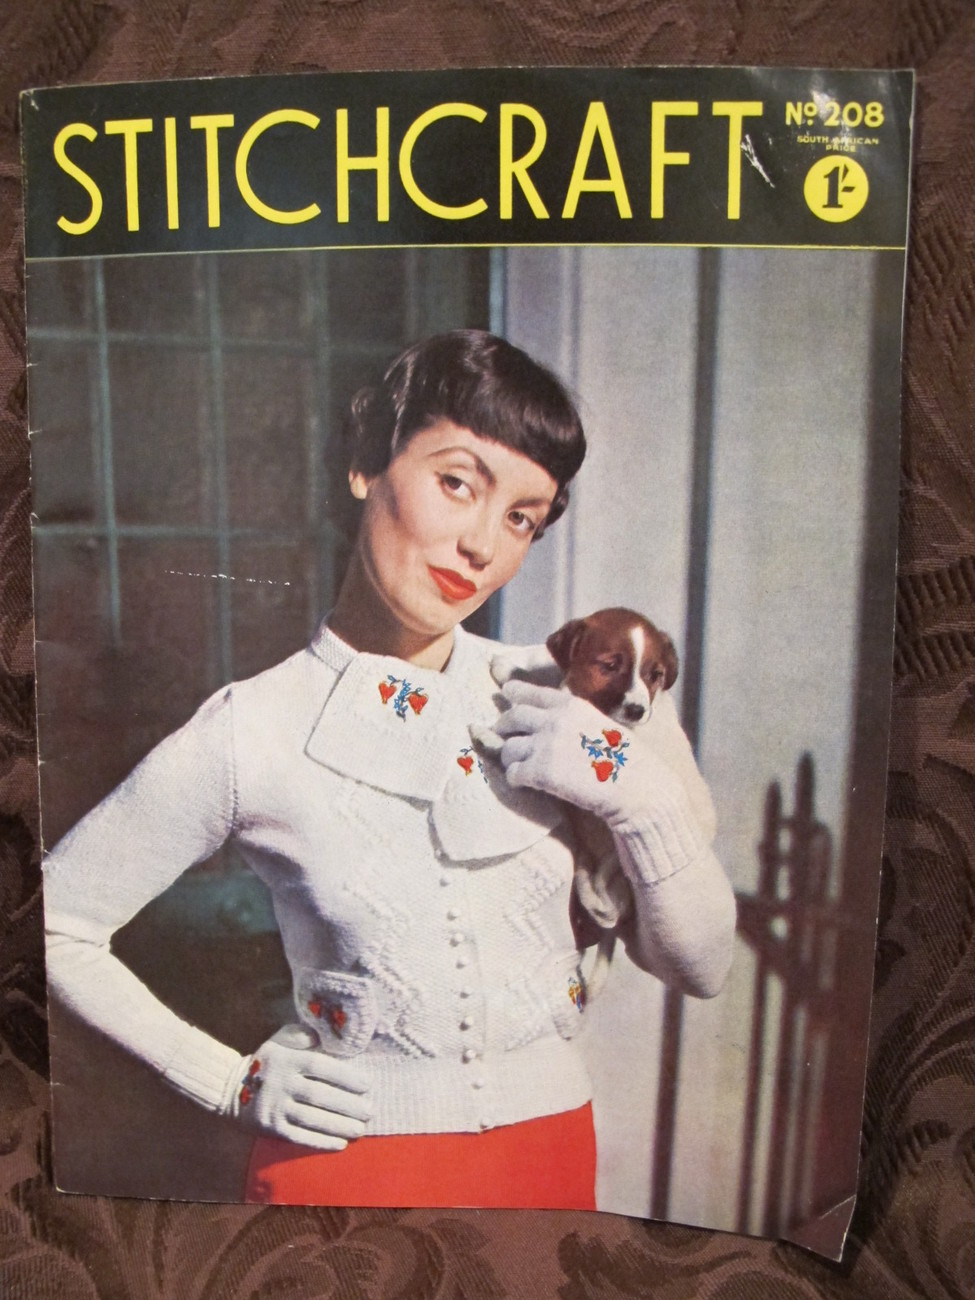 Vintage Stitchcraft Patterns Knitting Crochet Embroidery Needlework Recipes etc